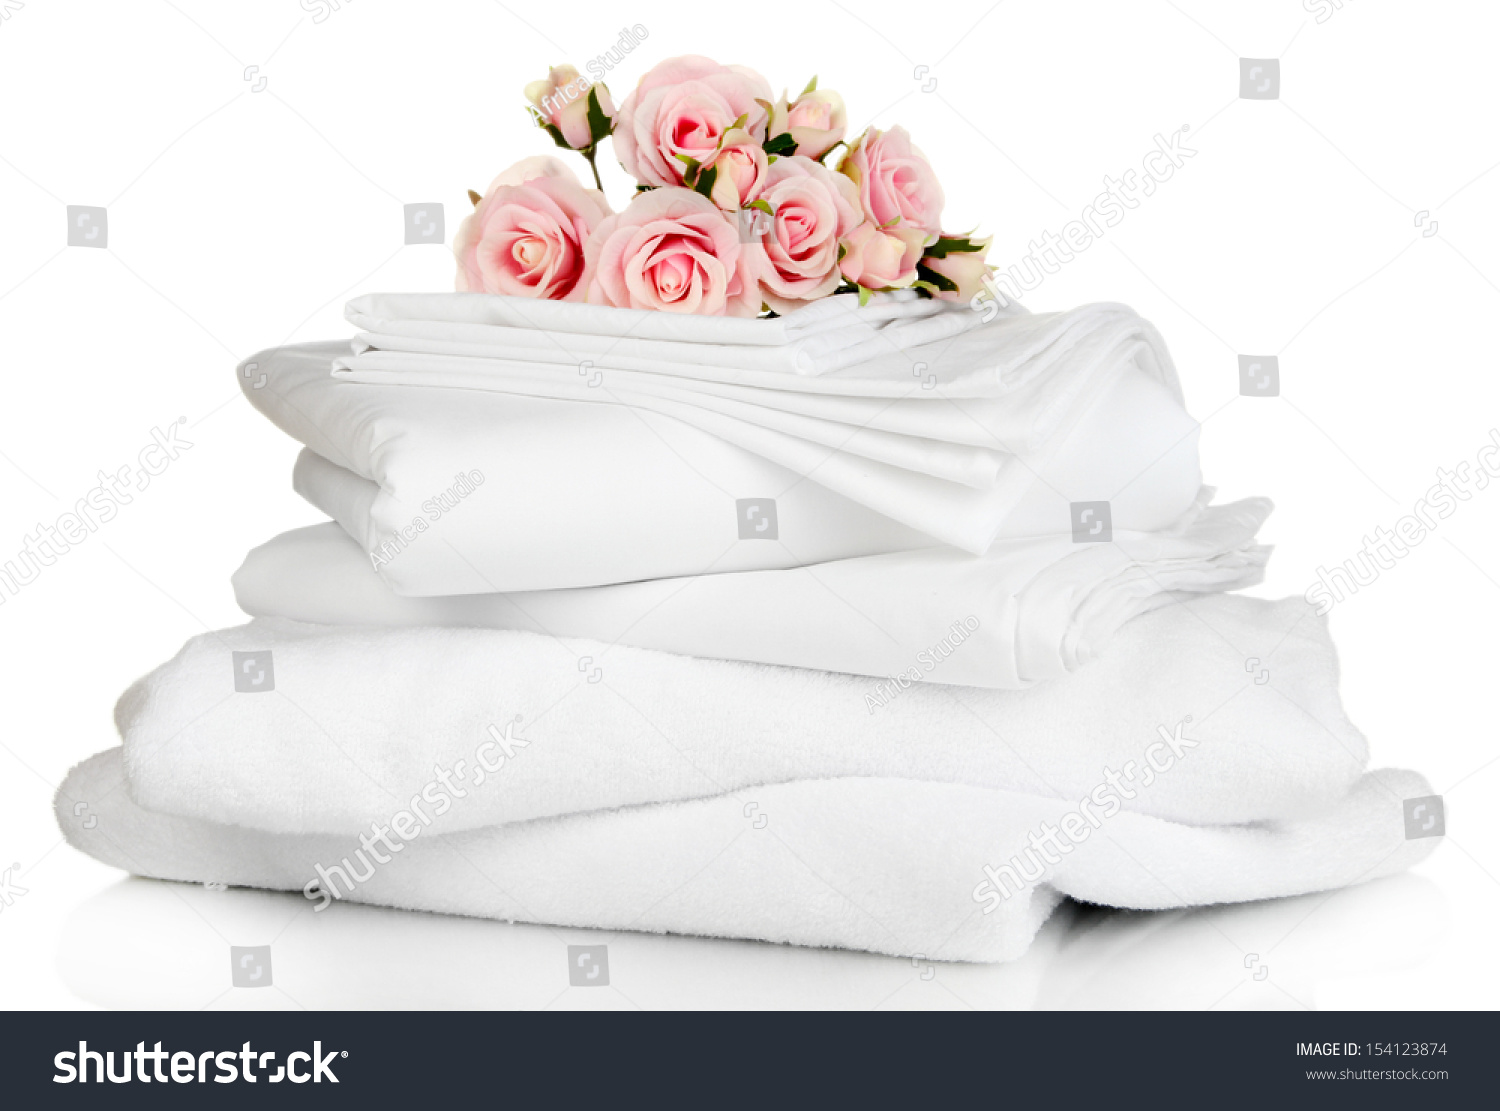 Stack clean bedding sheets towels isolated stock photo 154123874 shutterstock - Wash white sheets keep fresh ...